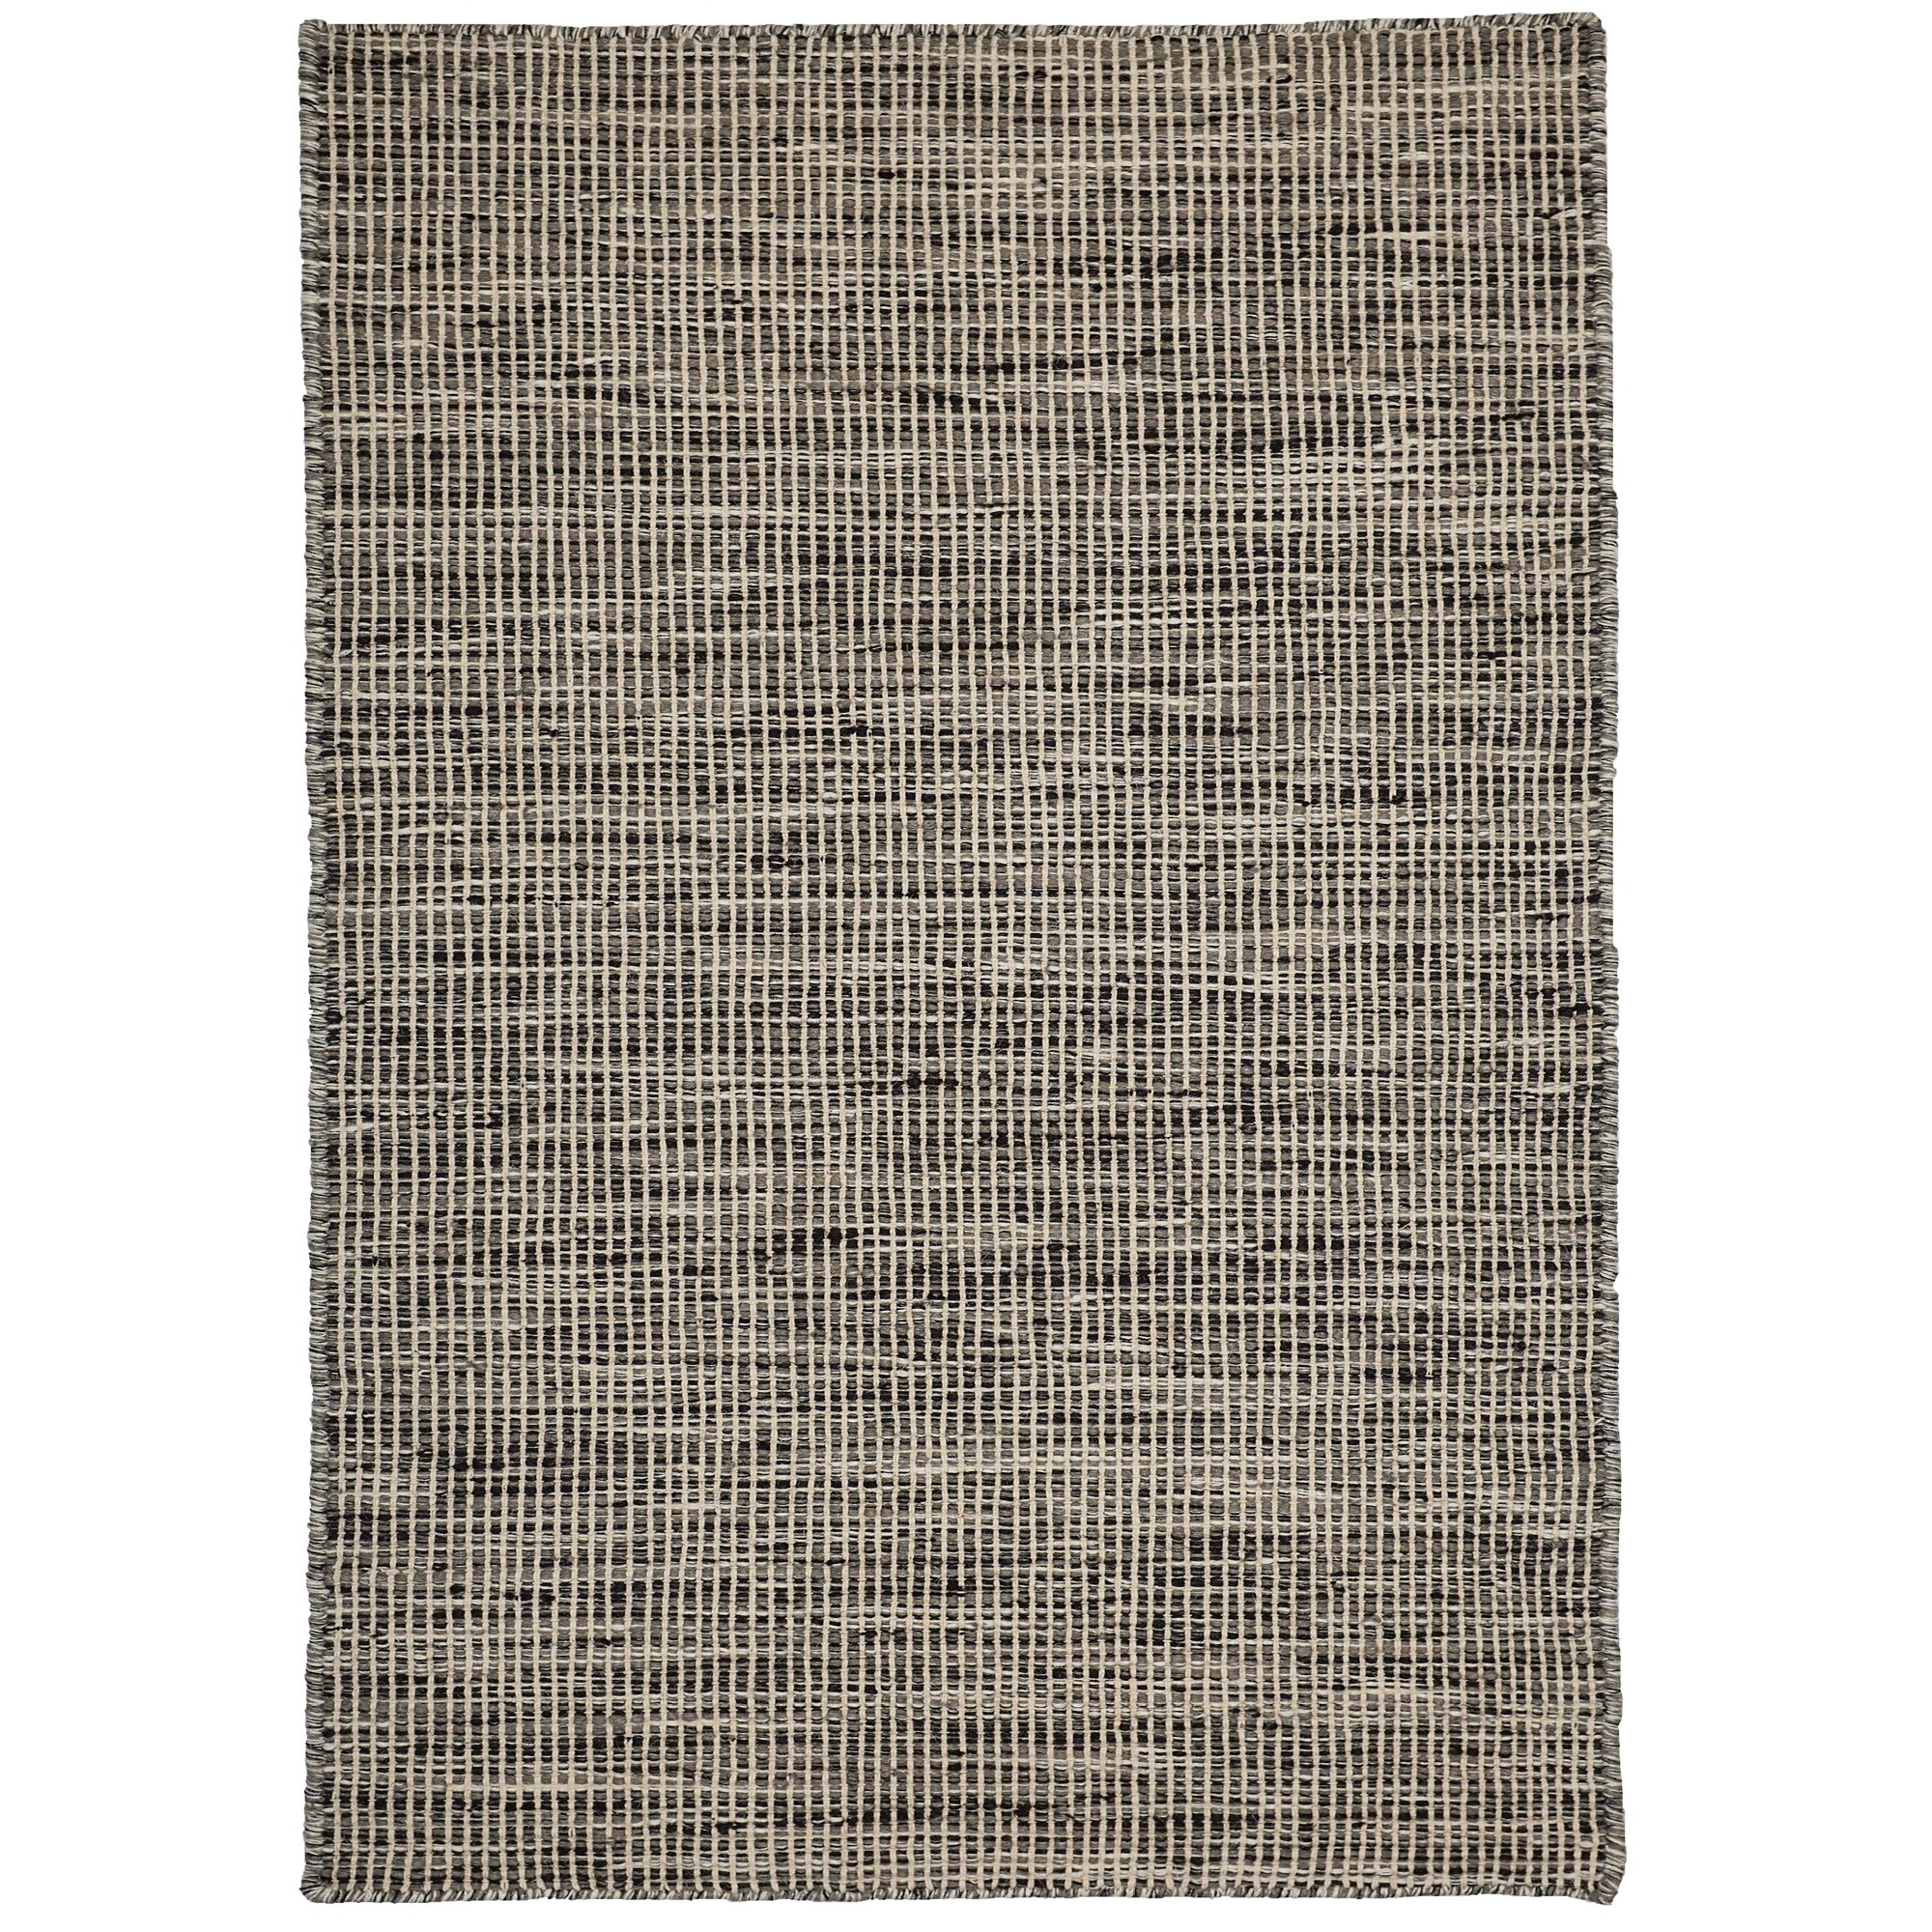 Pronto Handwoven Wool Rug, 330x240cm, Charcoal